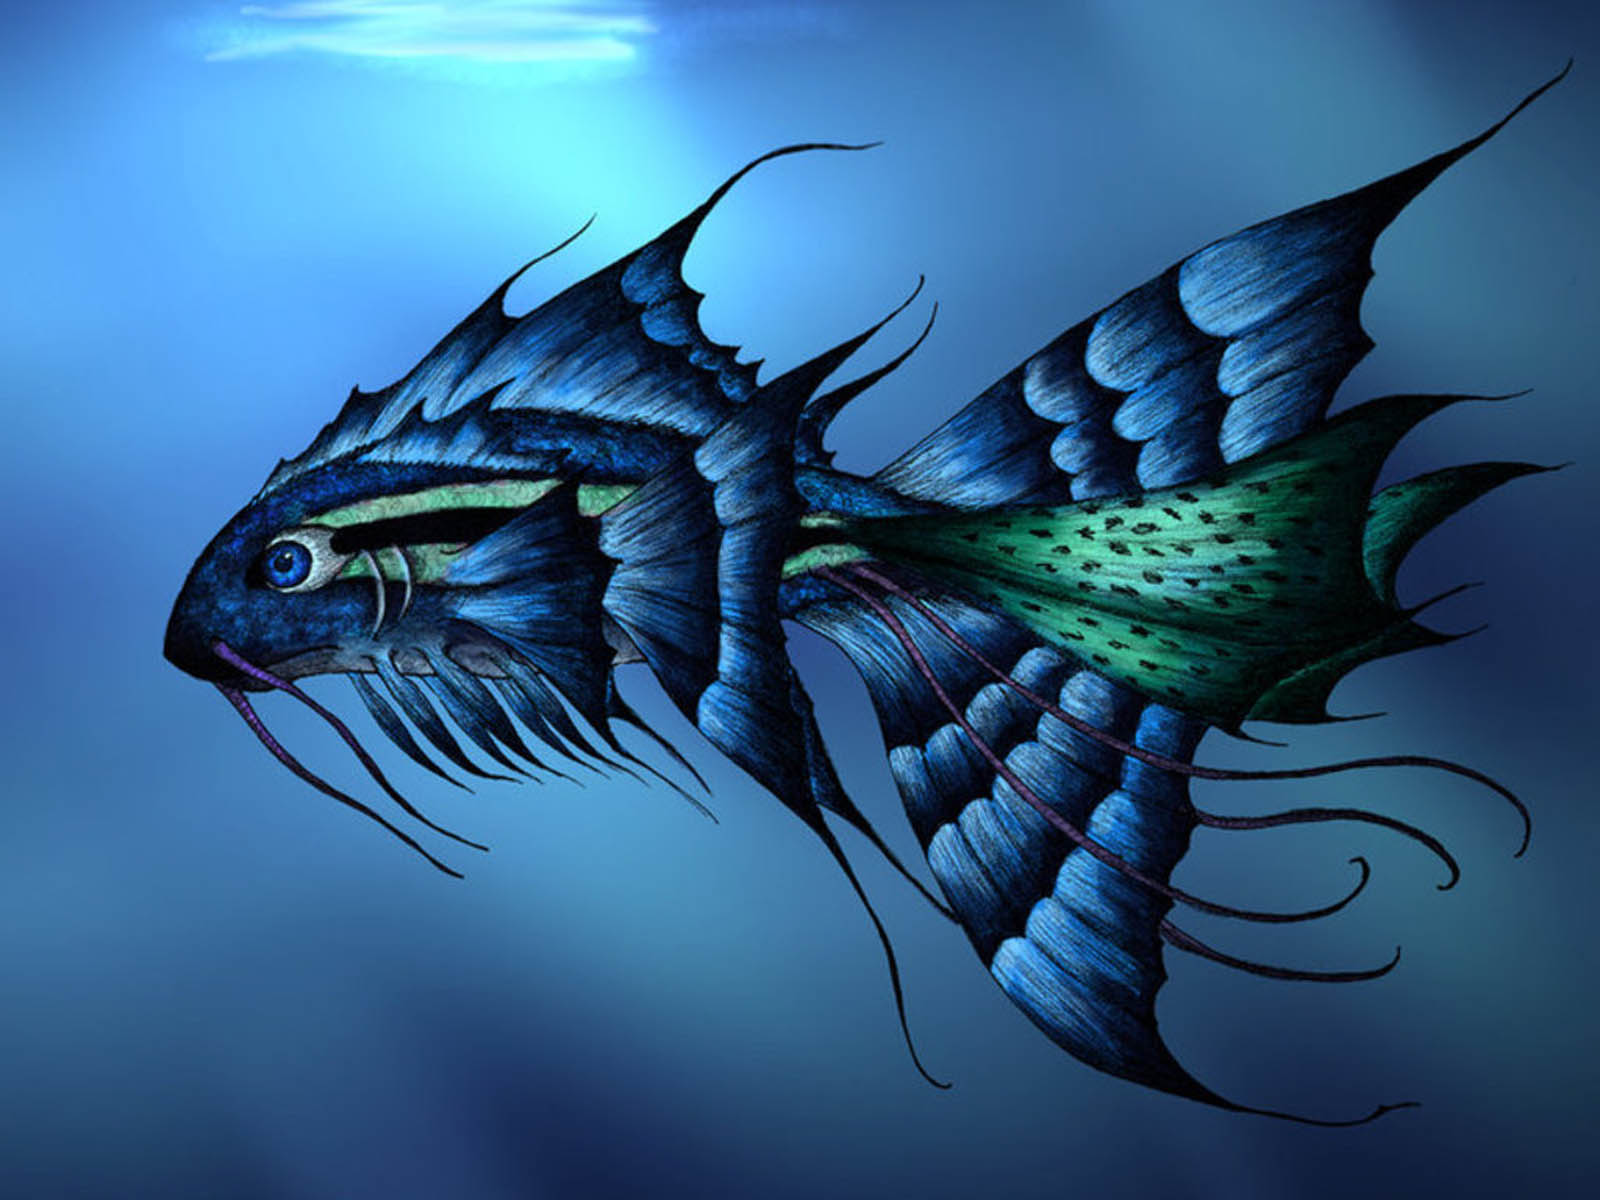 wallpapers 3d fish wallpapers For3d Fish Wallpaper